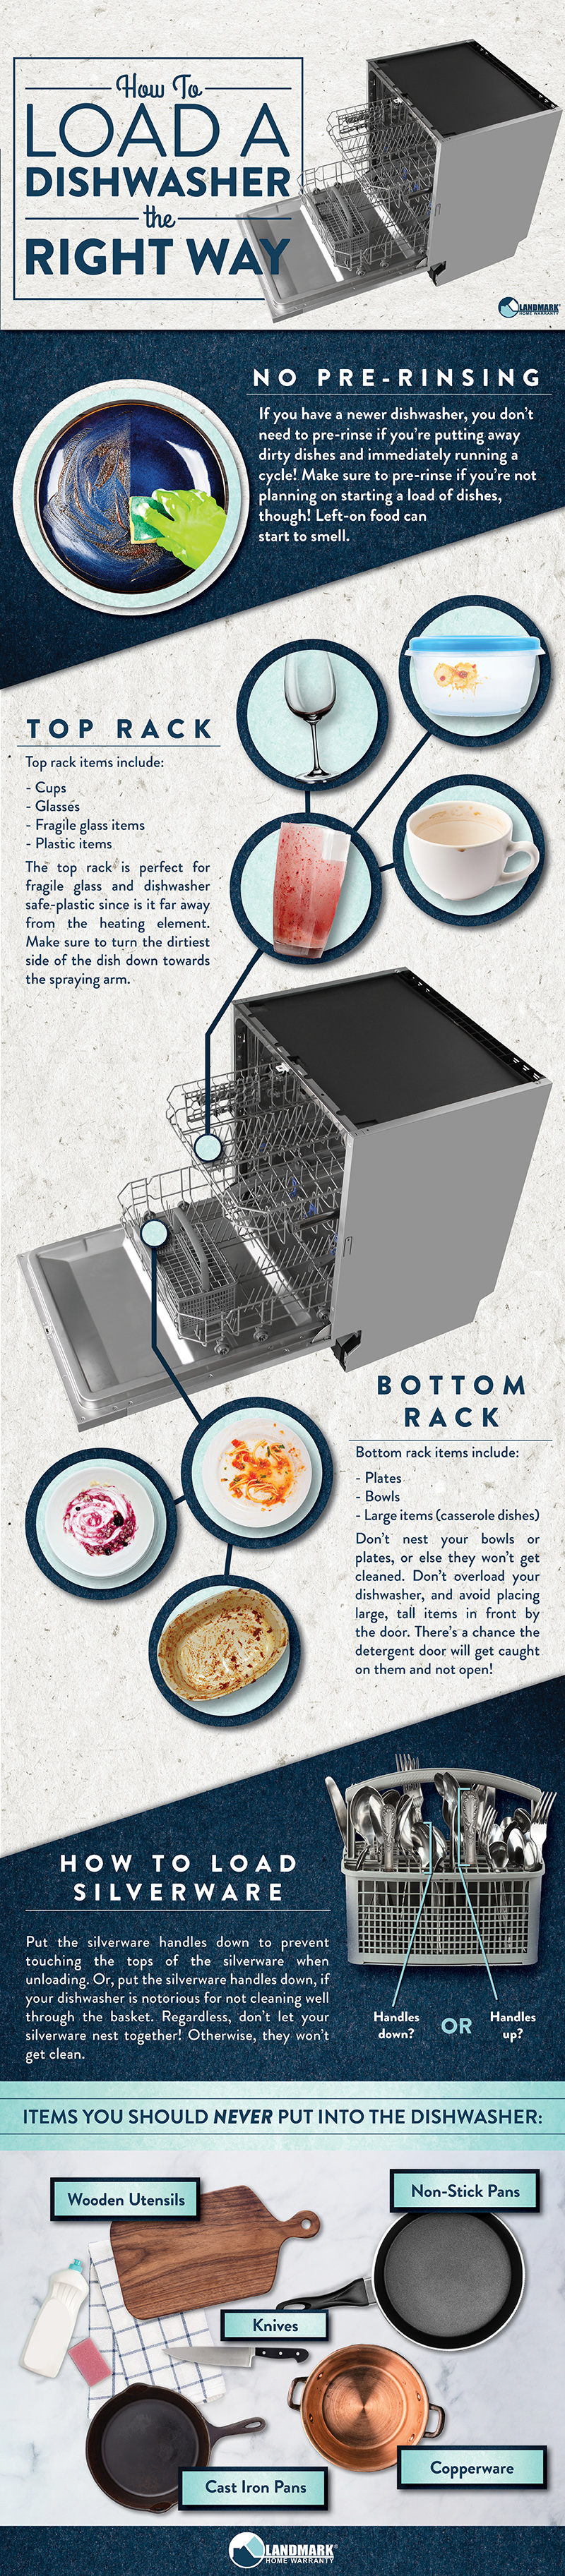 Full infographic on how to properly load a dishwasher.